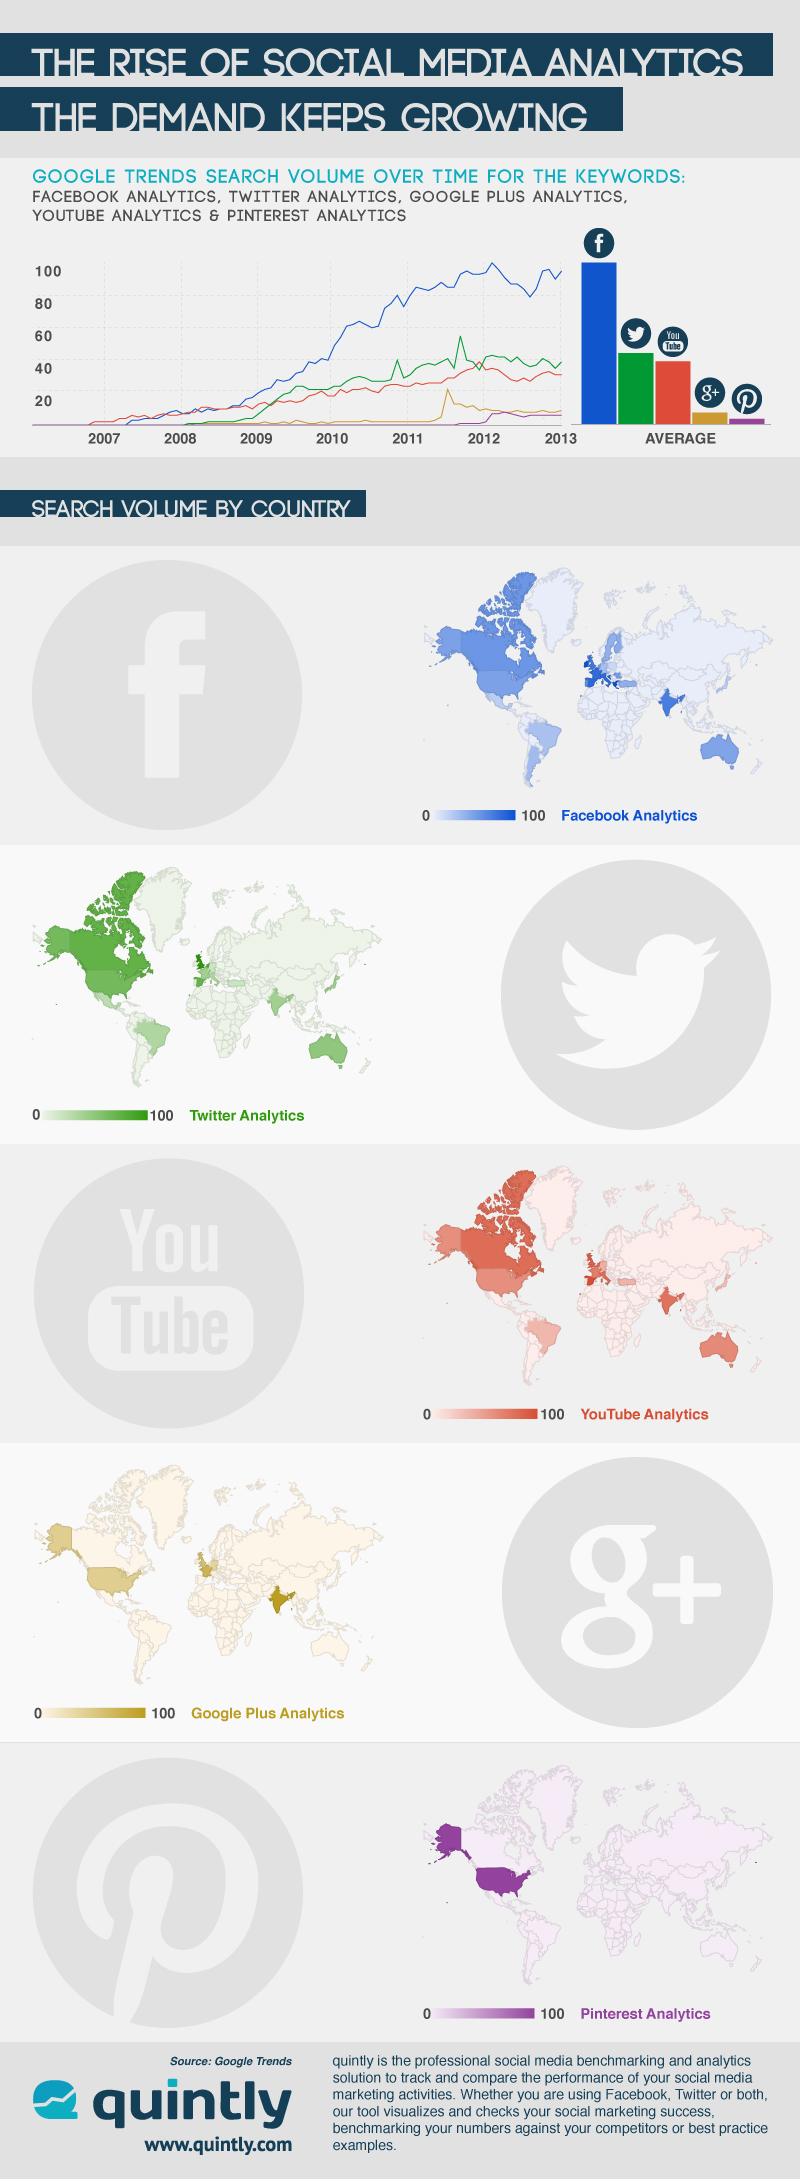 quintly Infographic: The Rise Of Social Media Analytics  The Demand Keeps Growing